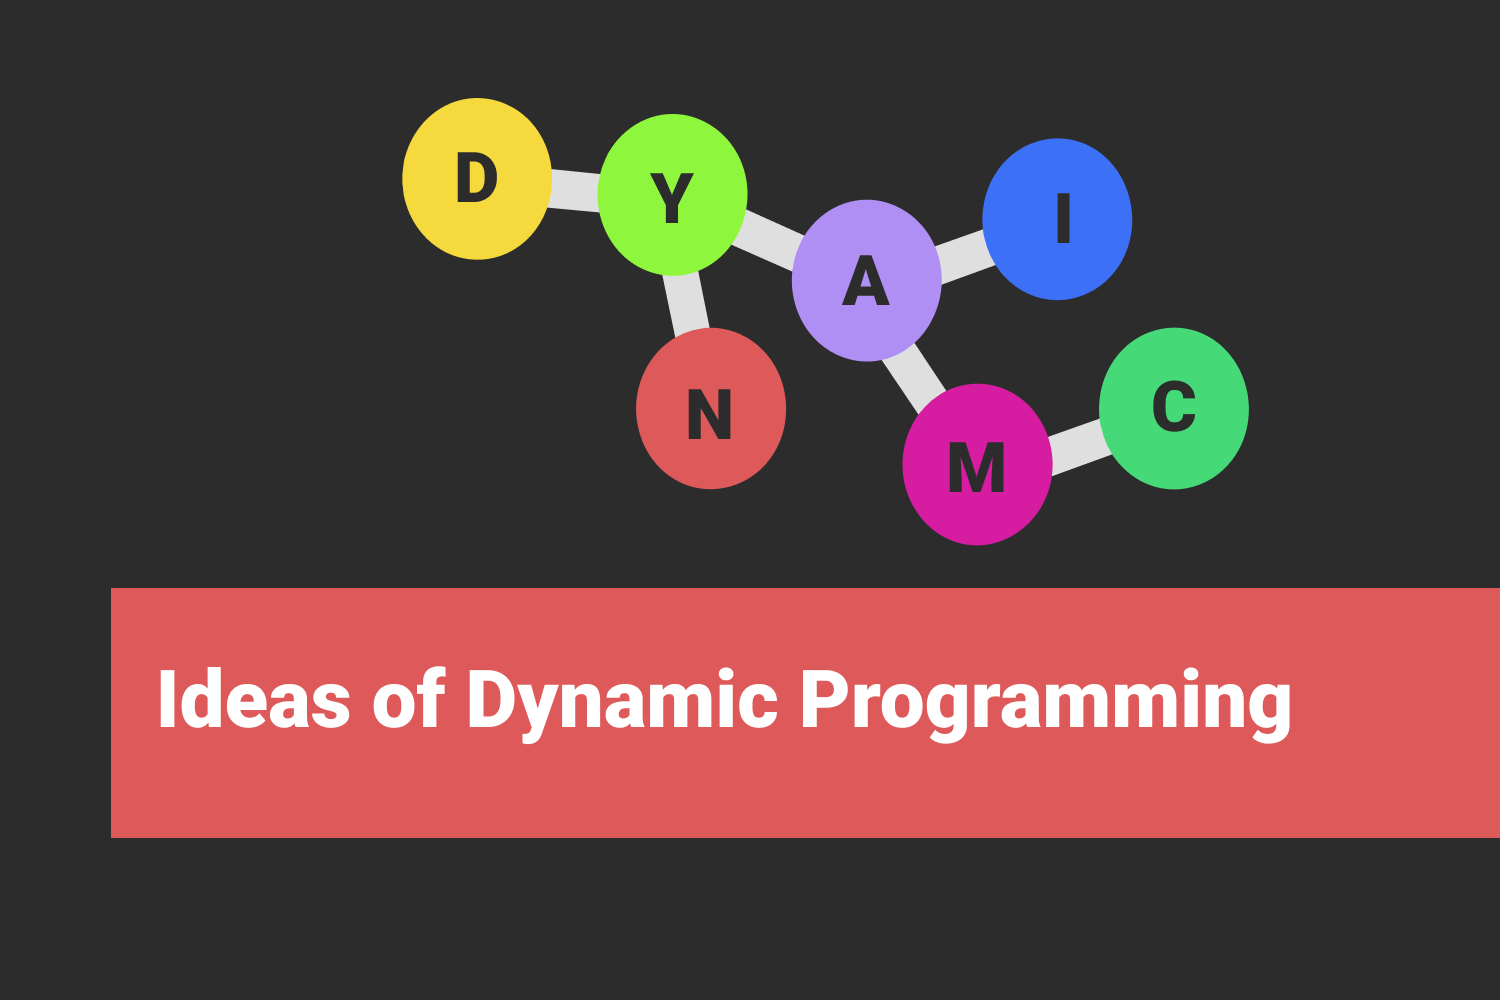 Idea of Dynamic Programming